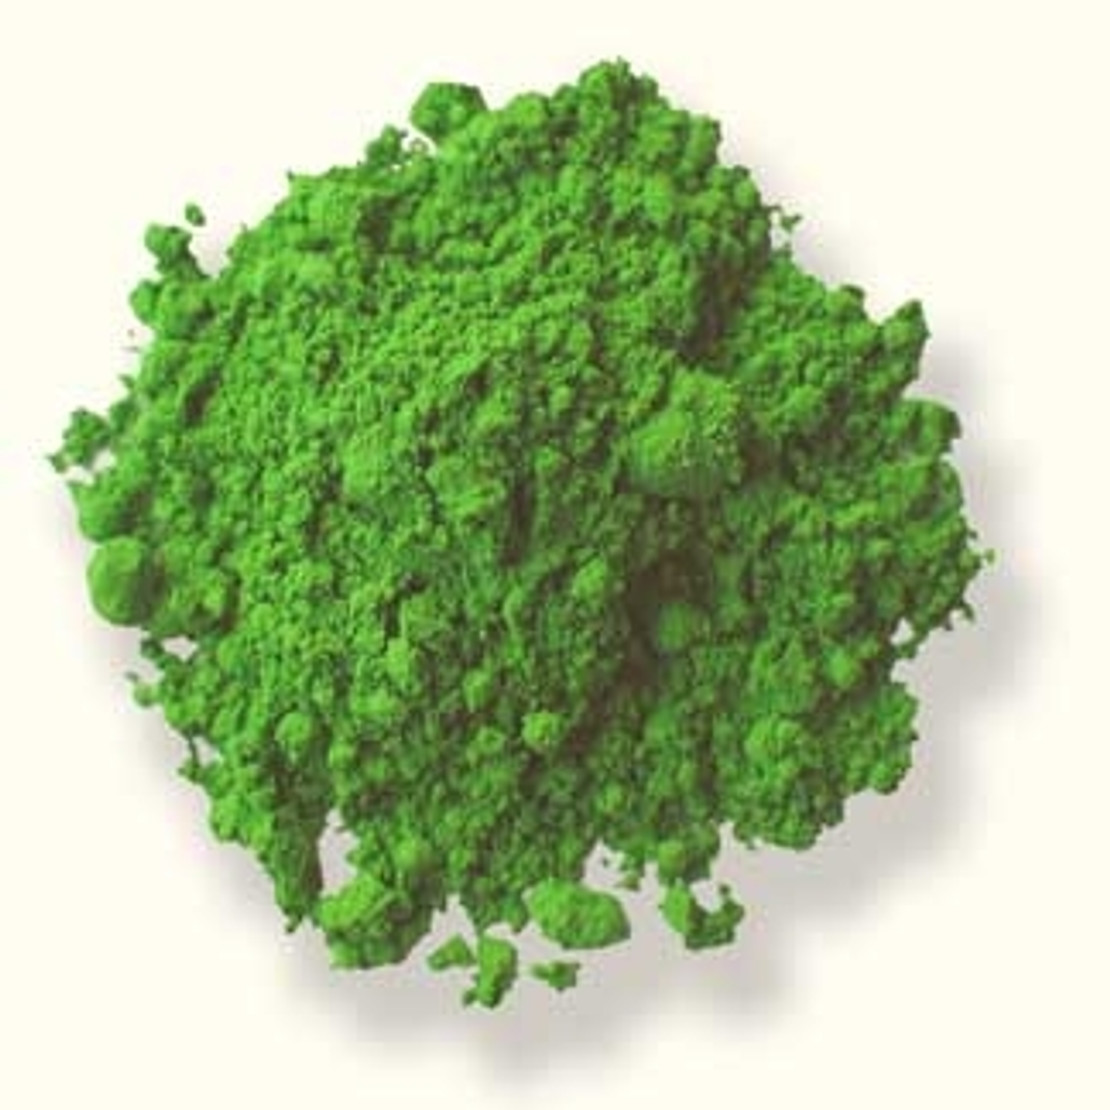 A Closer Look at our Chef's Grade Matcha